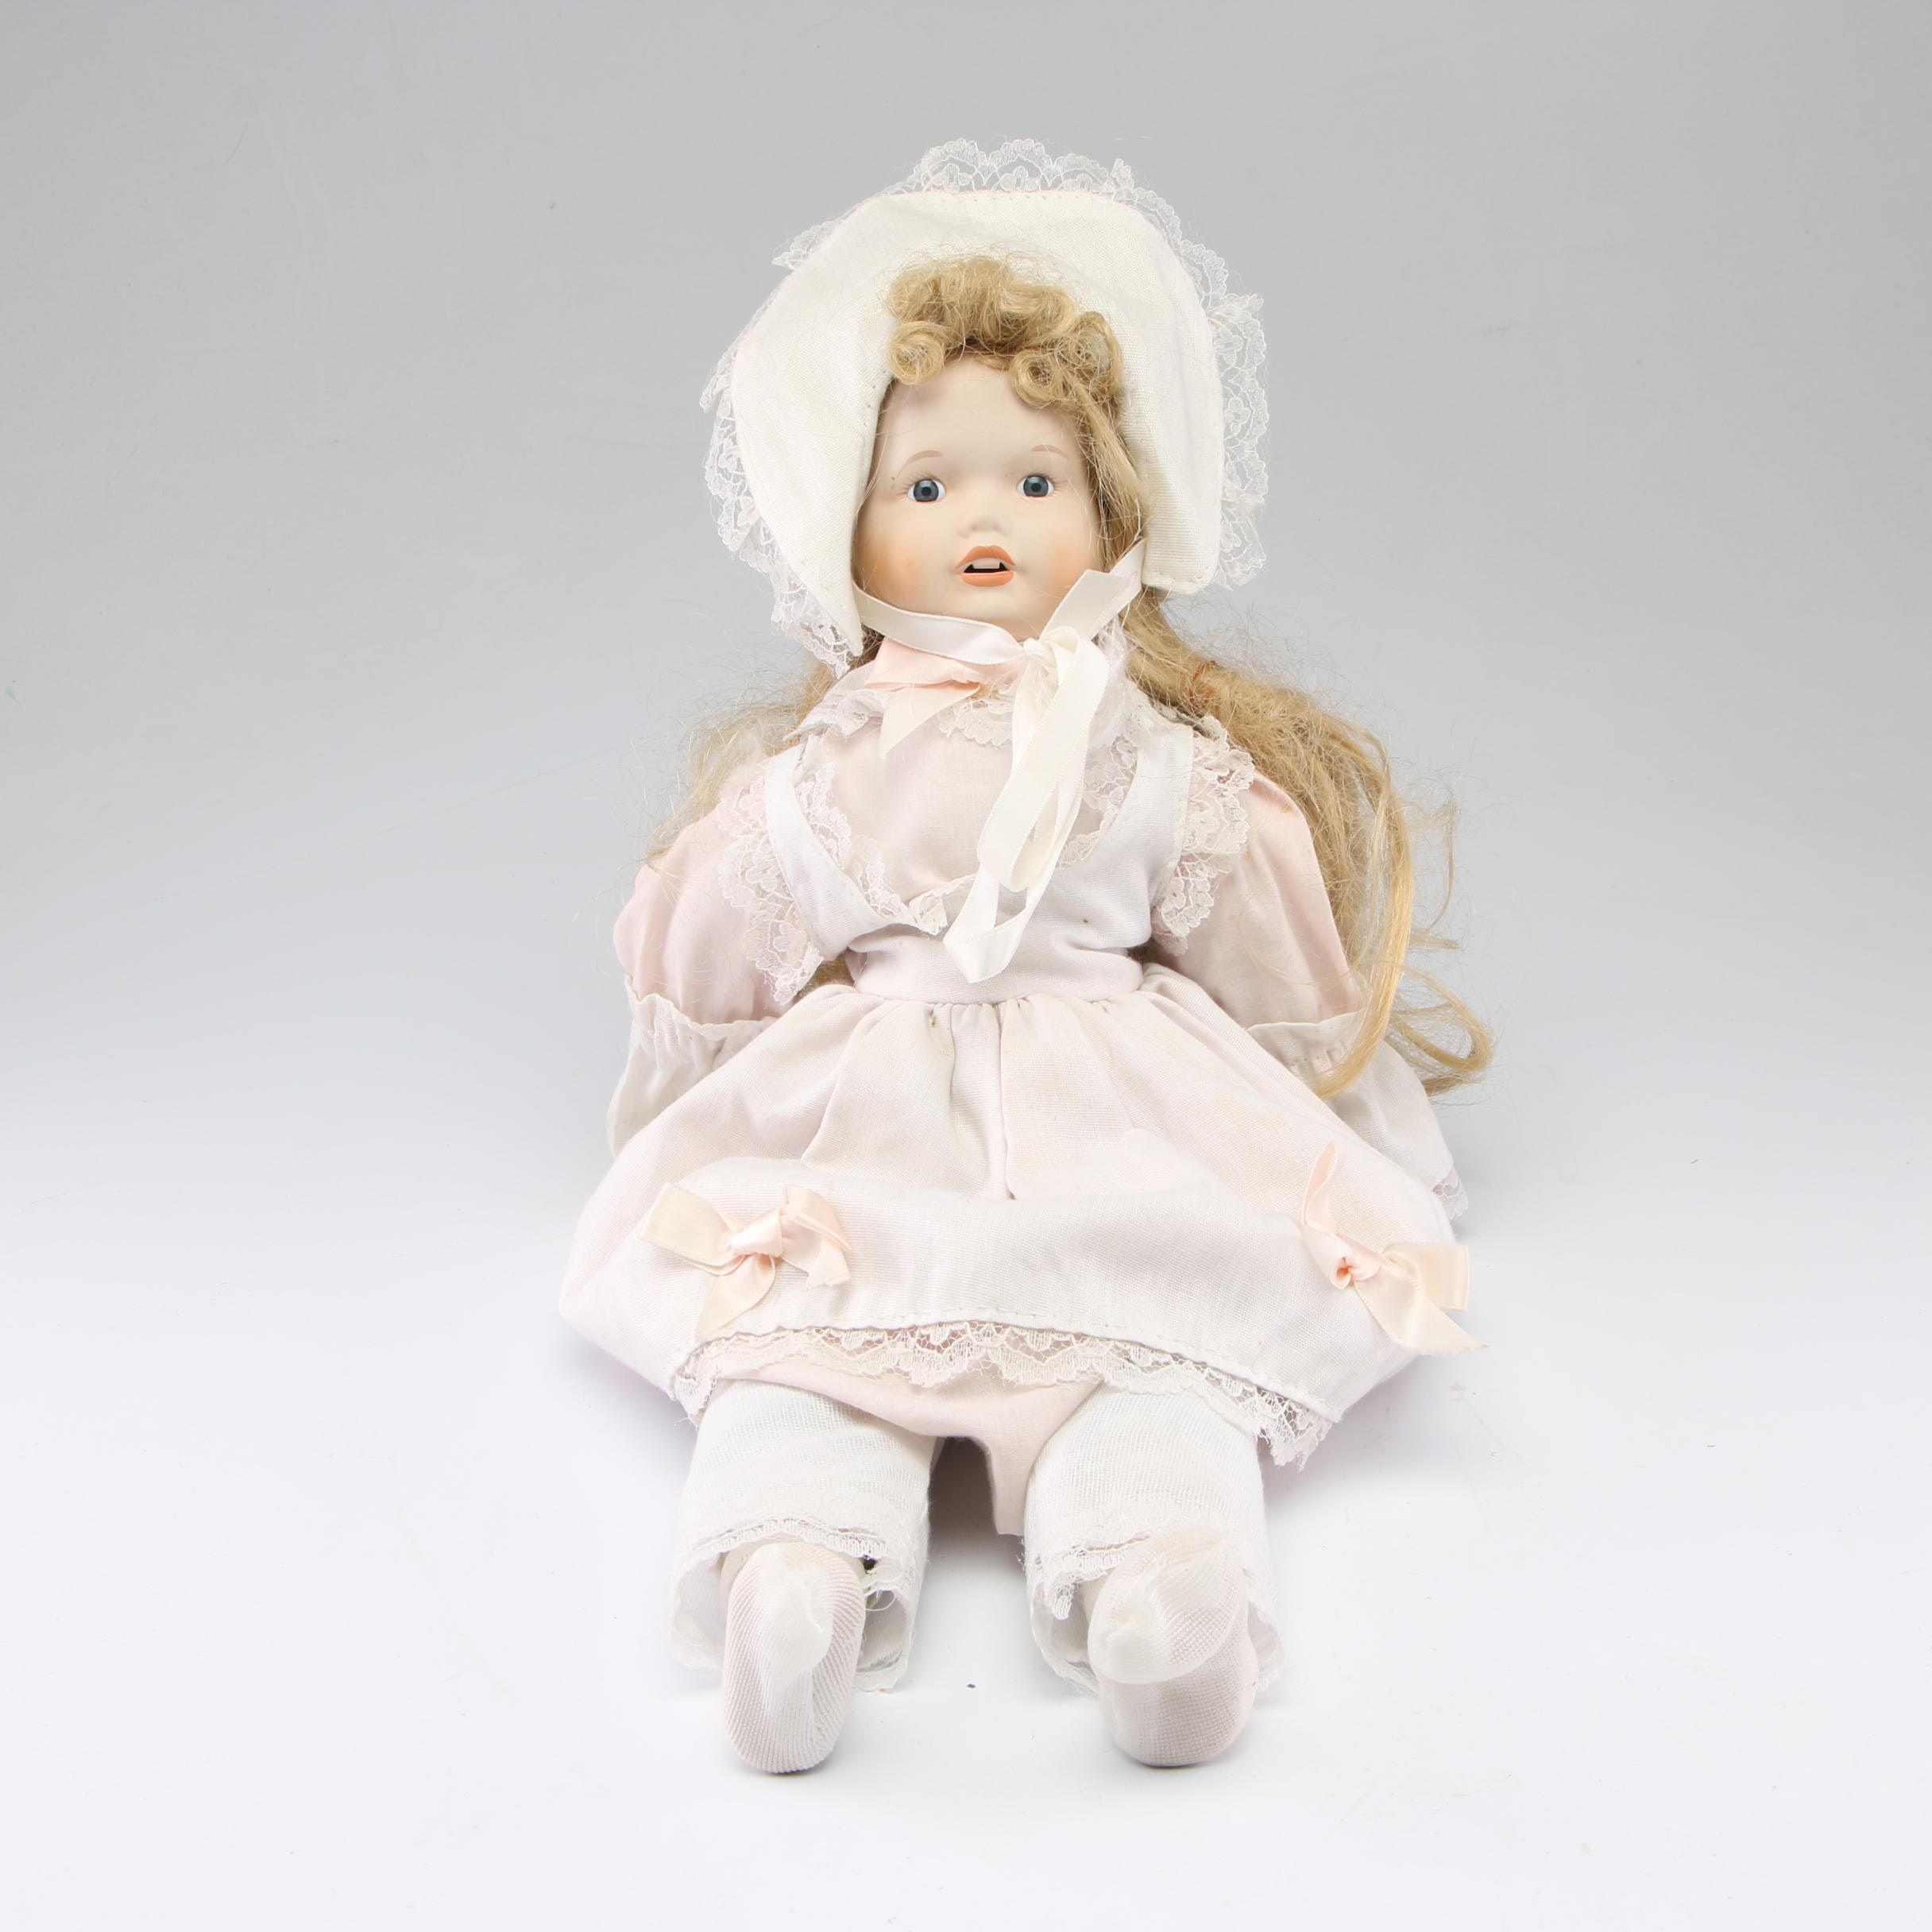 Porcelain Bisque Doll, Late 20th Century